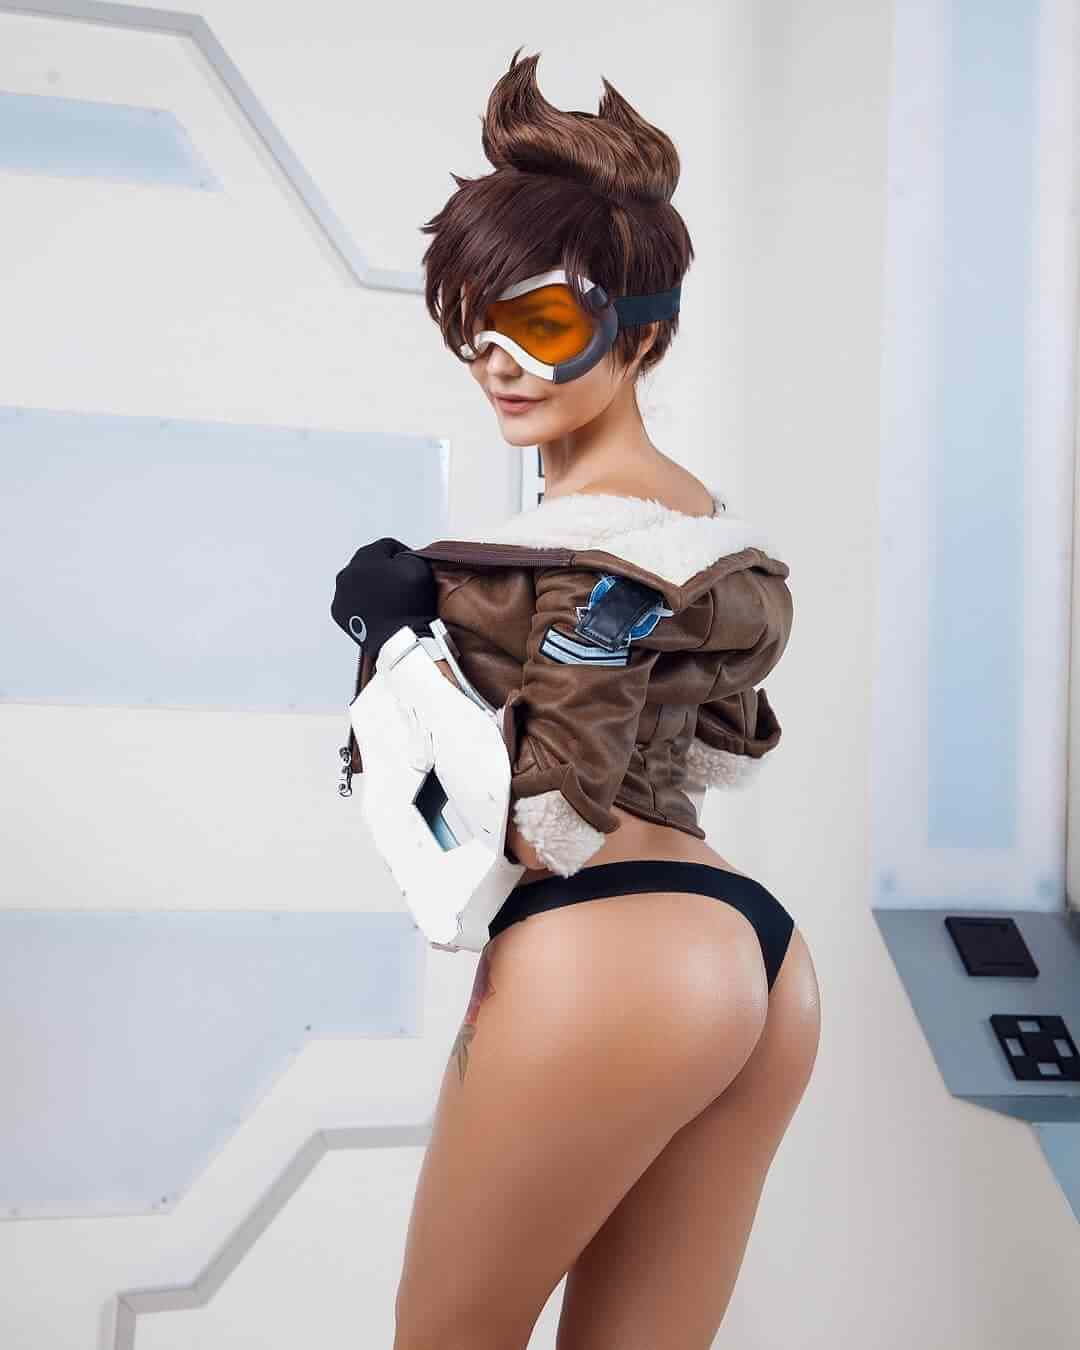 tracer awesome ass